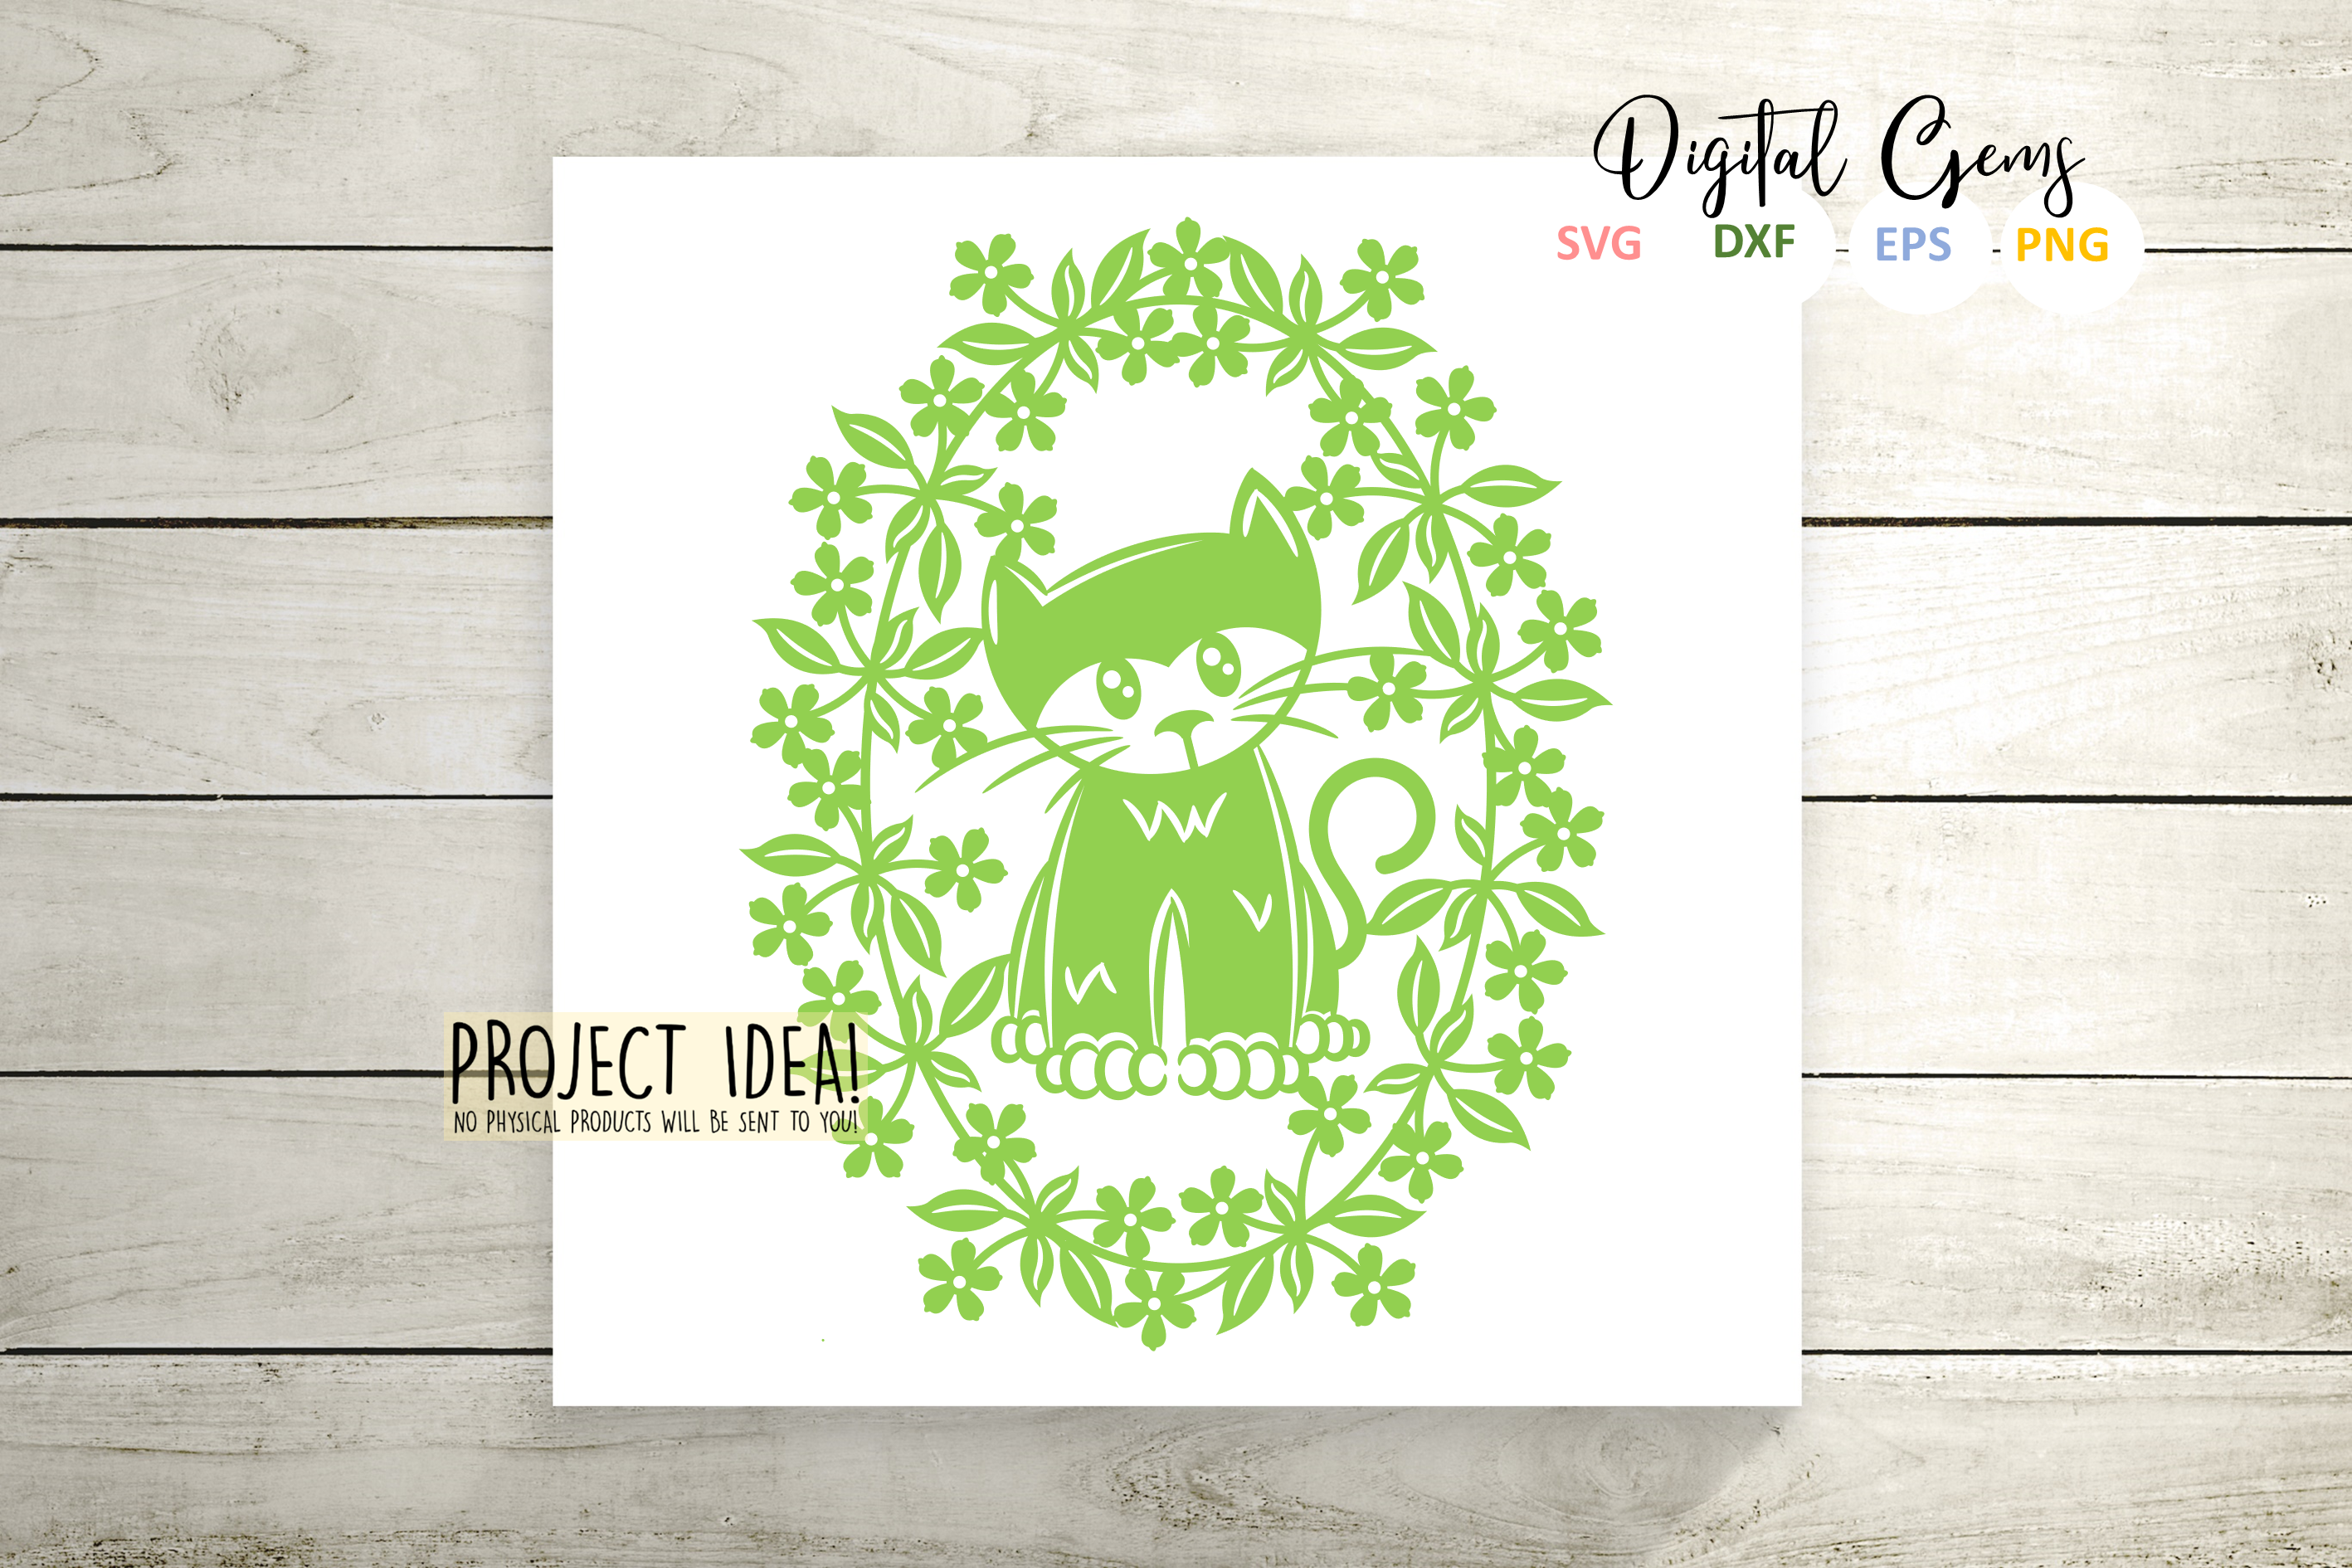 Cat paper cut design SVG / DXF / EPS / PNG files example image 6